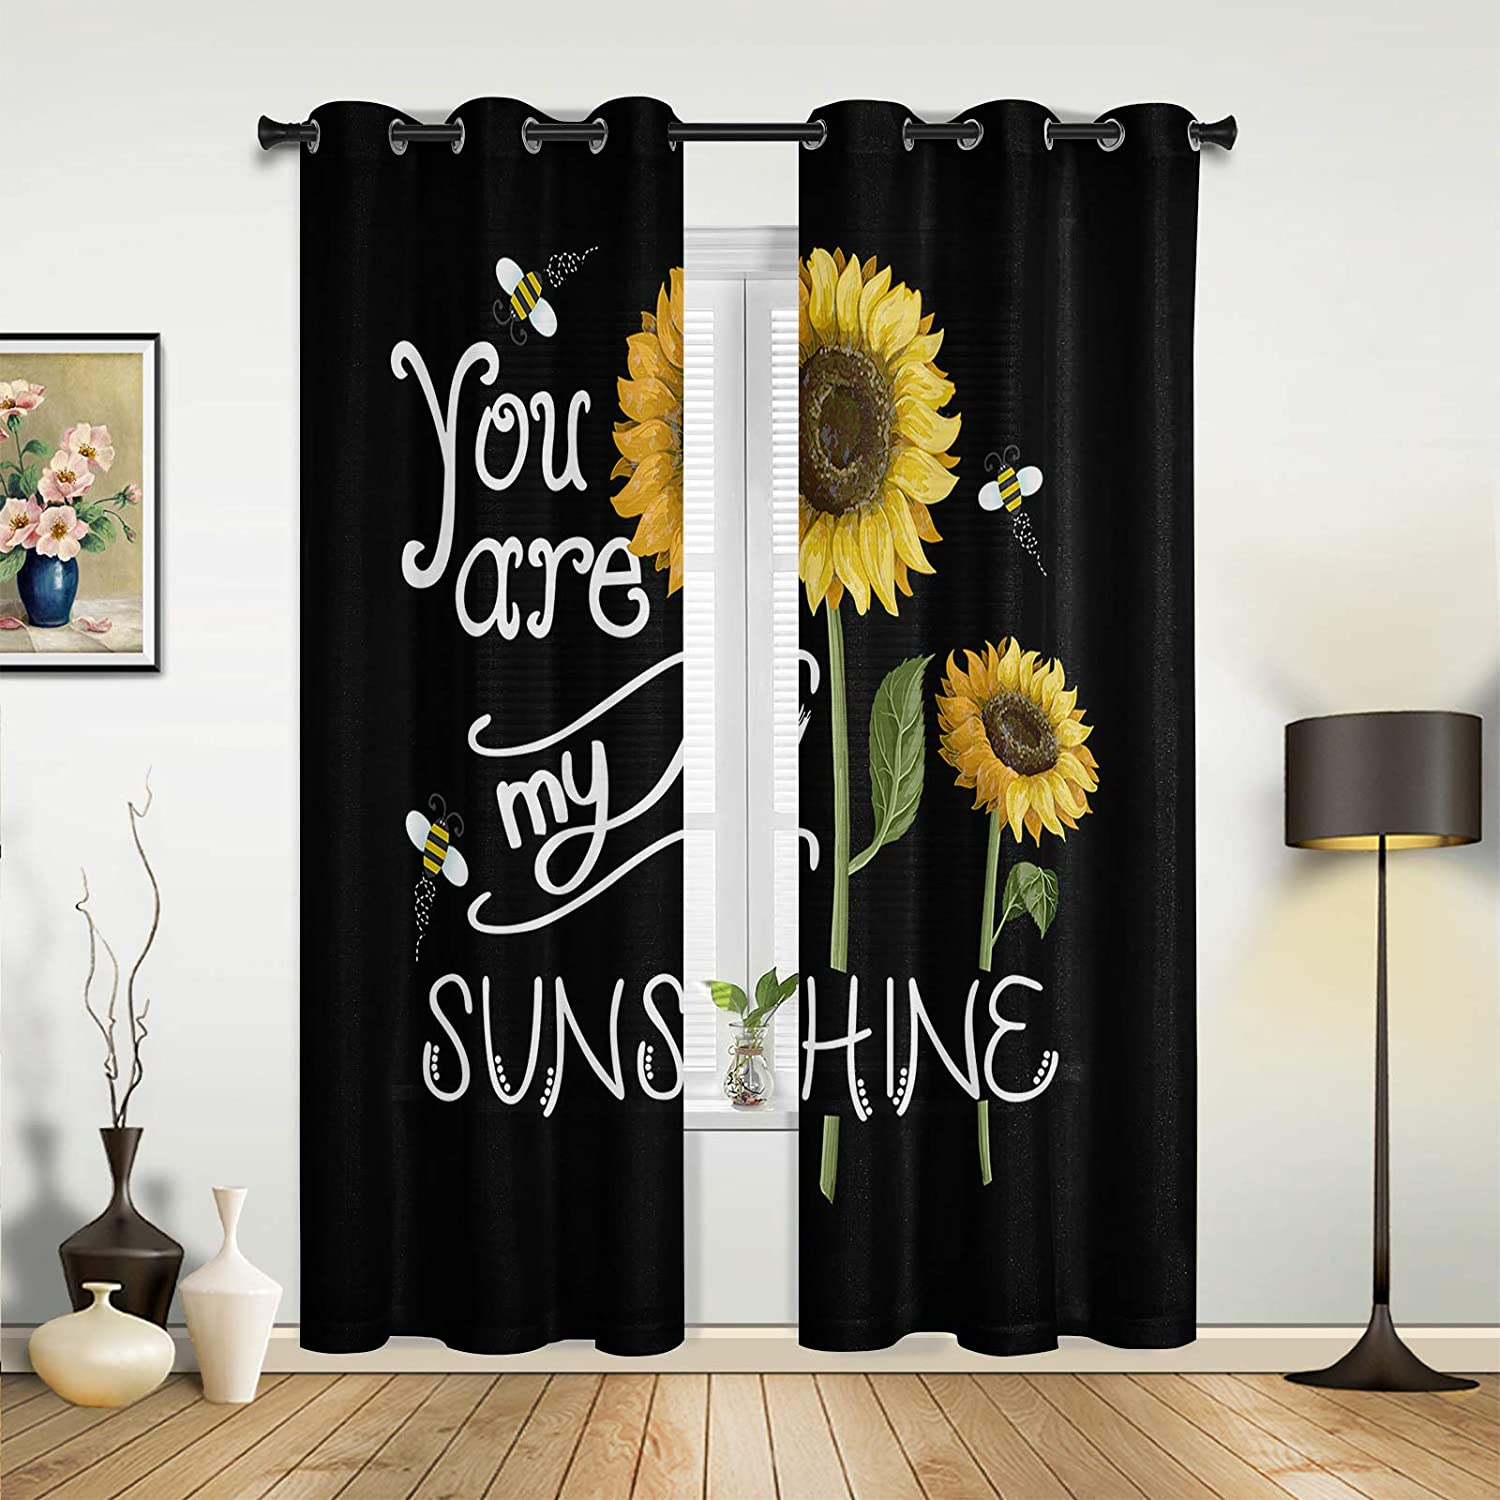 Window Sheer Curtains for Bedroom You Popularity Max 84% OFF are Sunflower Room Living